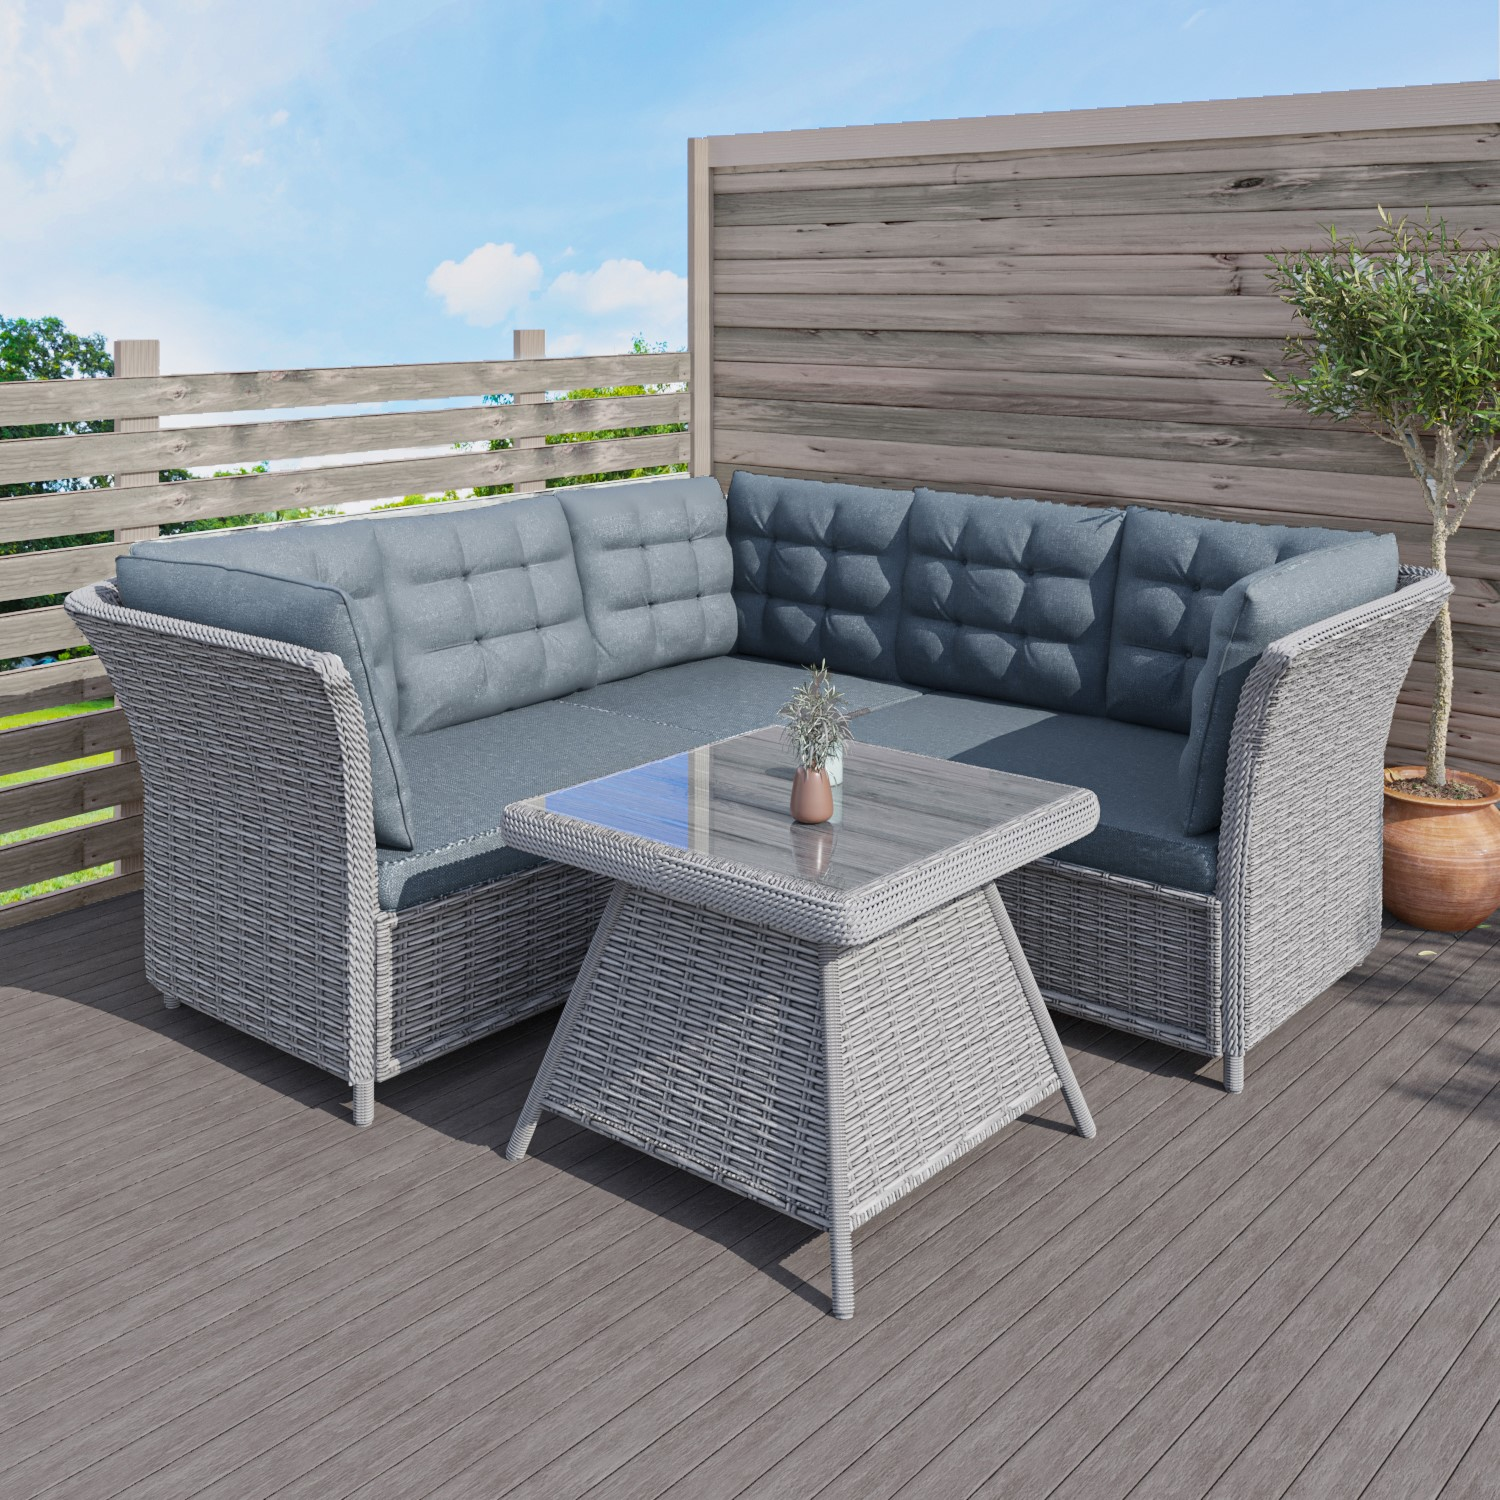 Wondrous Aspen Grey Rattan Garden Furniture Corner Sofa Table Cushions Included Gmtry Best Dining Table And Chair Ideas Images Gmtryco